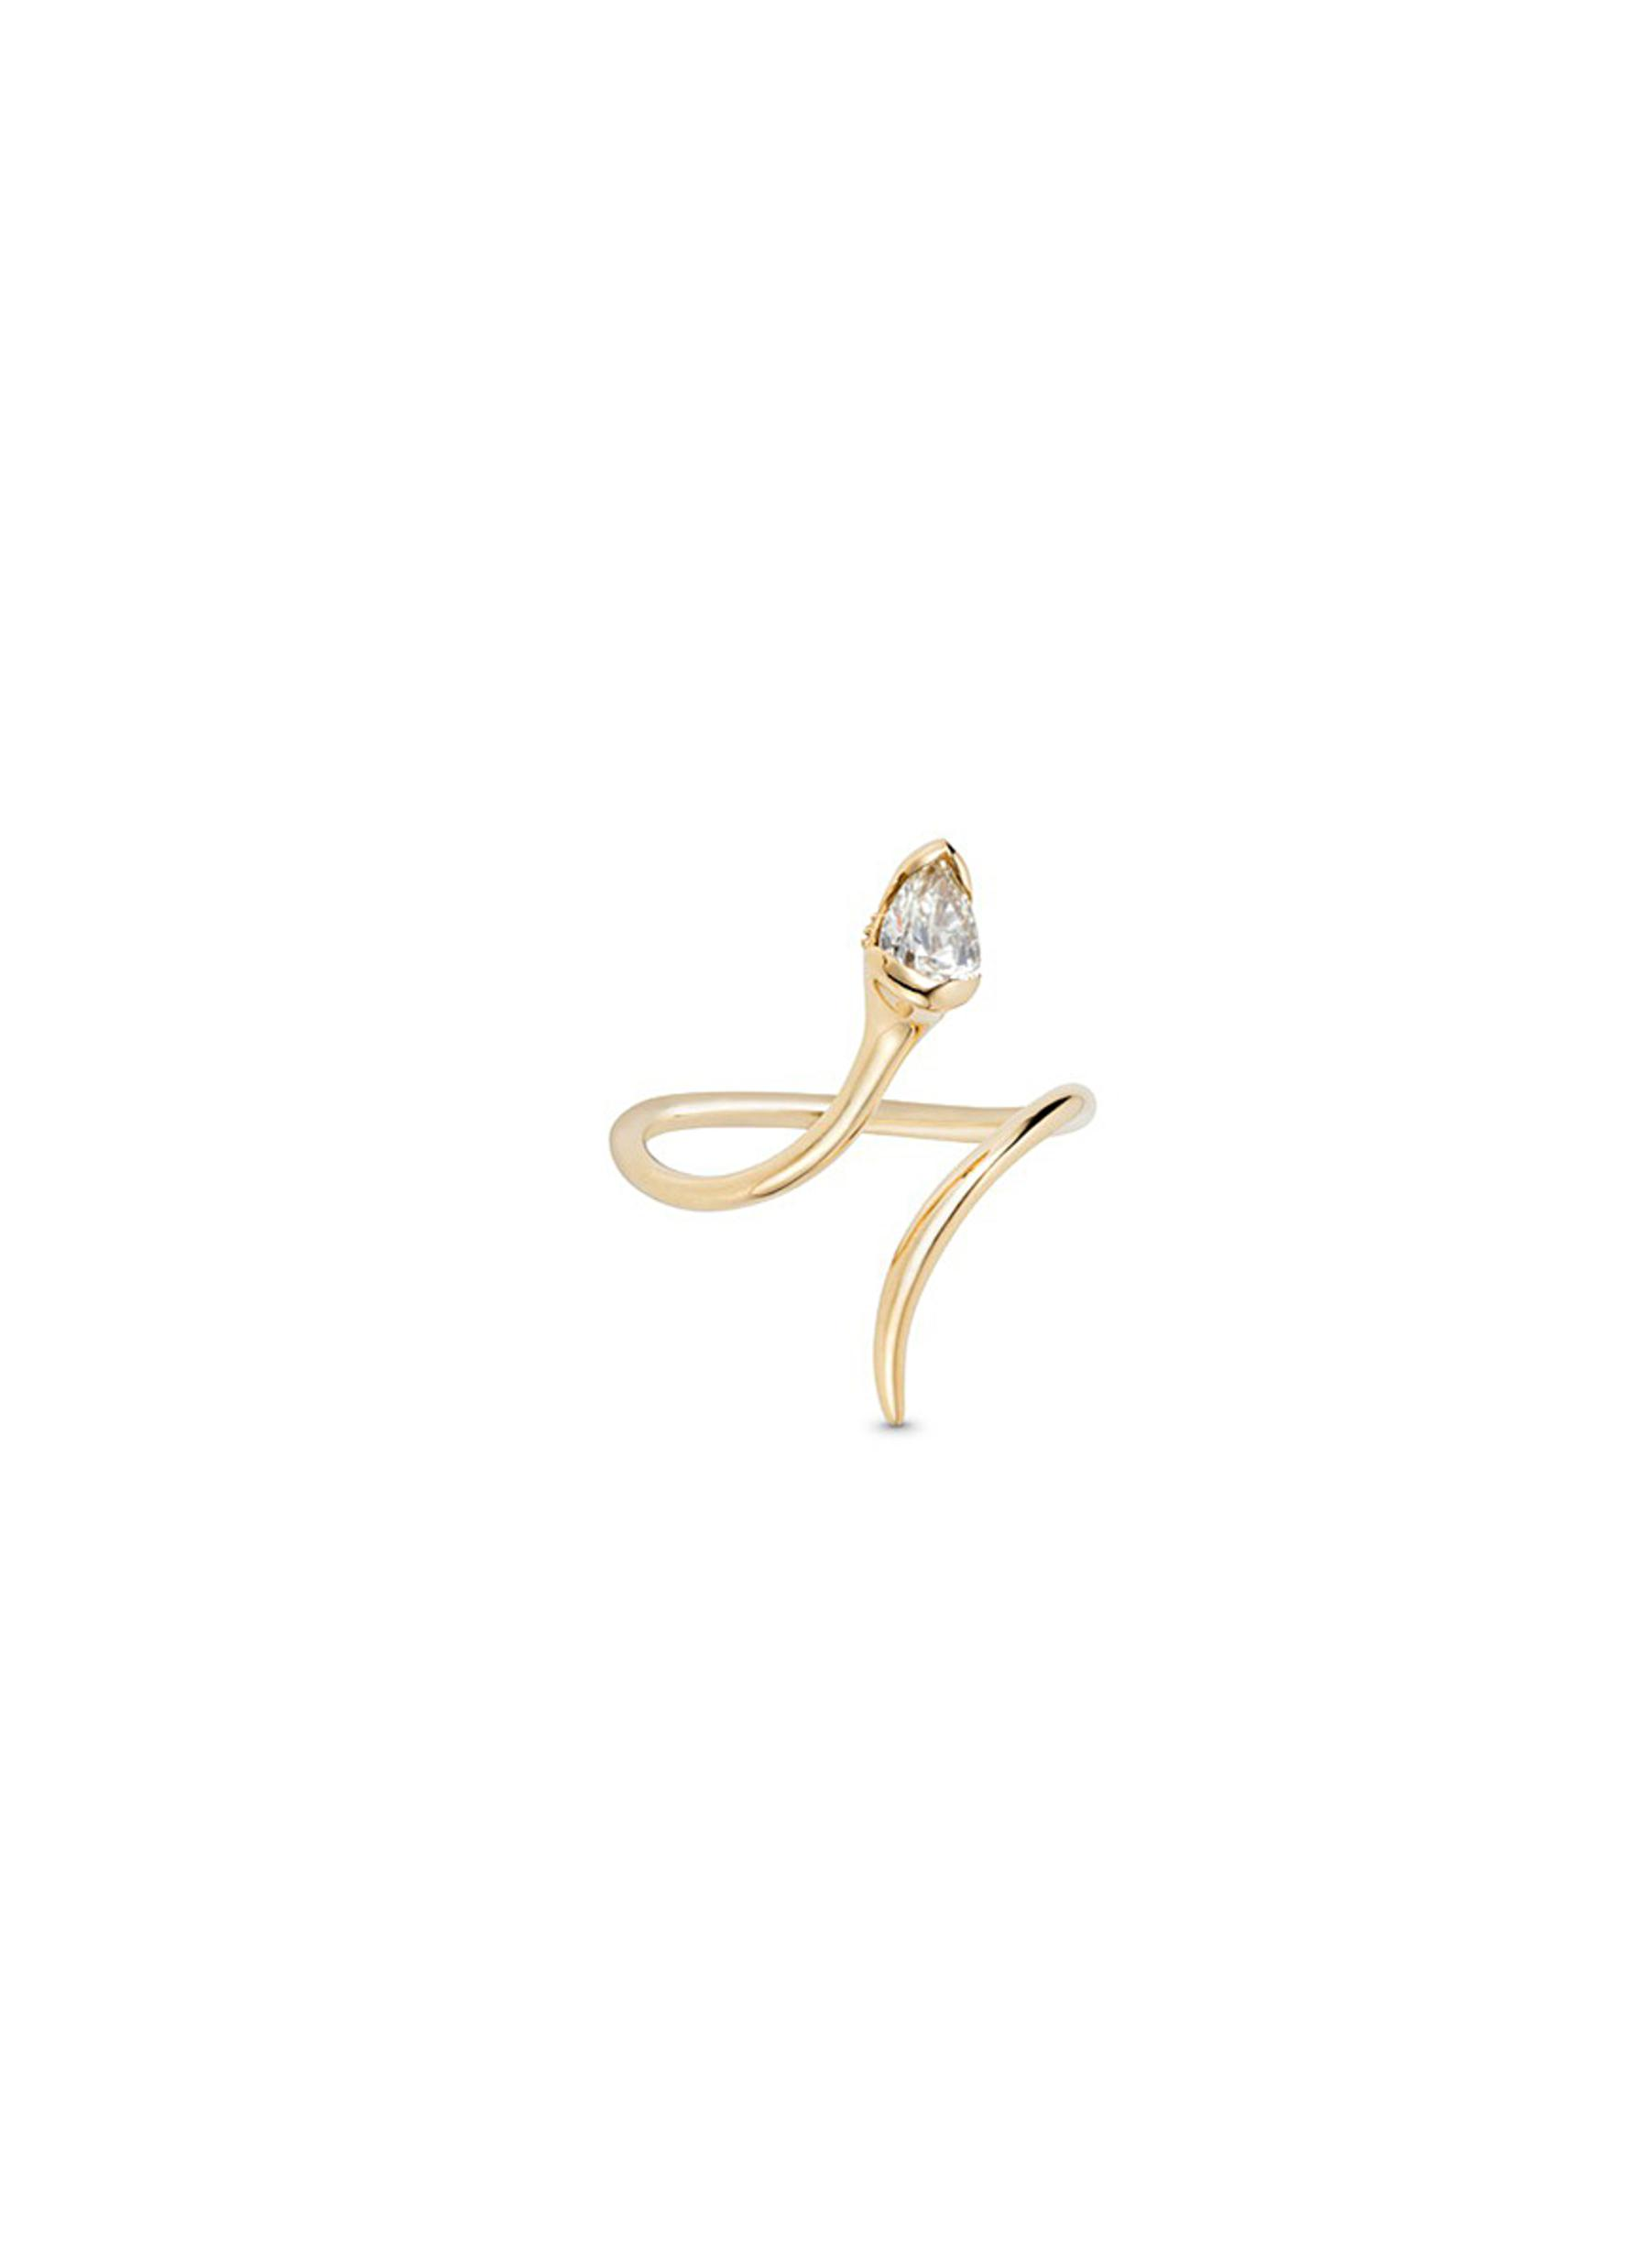 Sprout diamond 18k gold open ring by Fernando Jorge